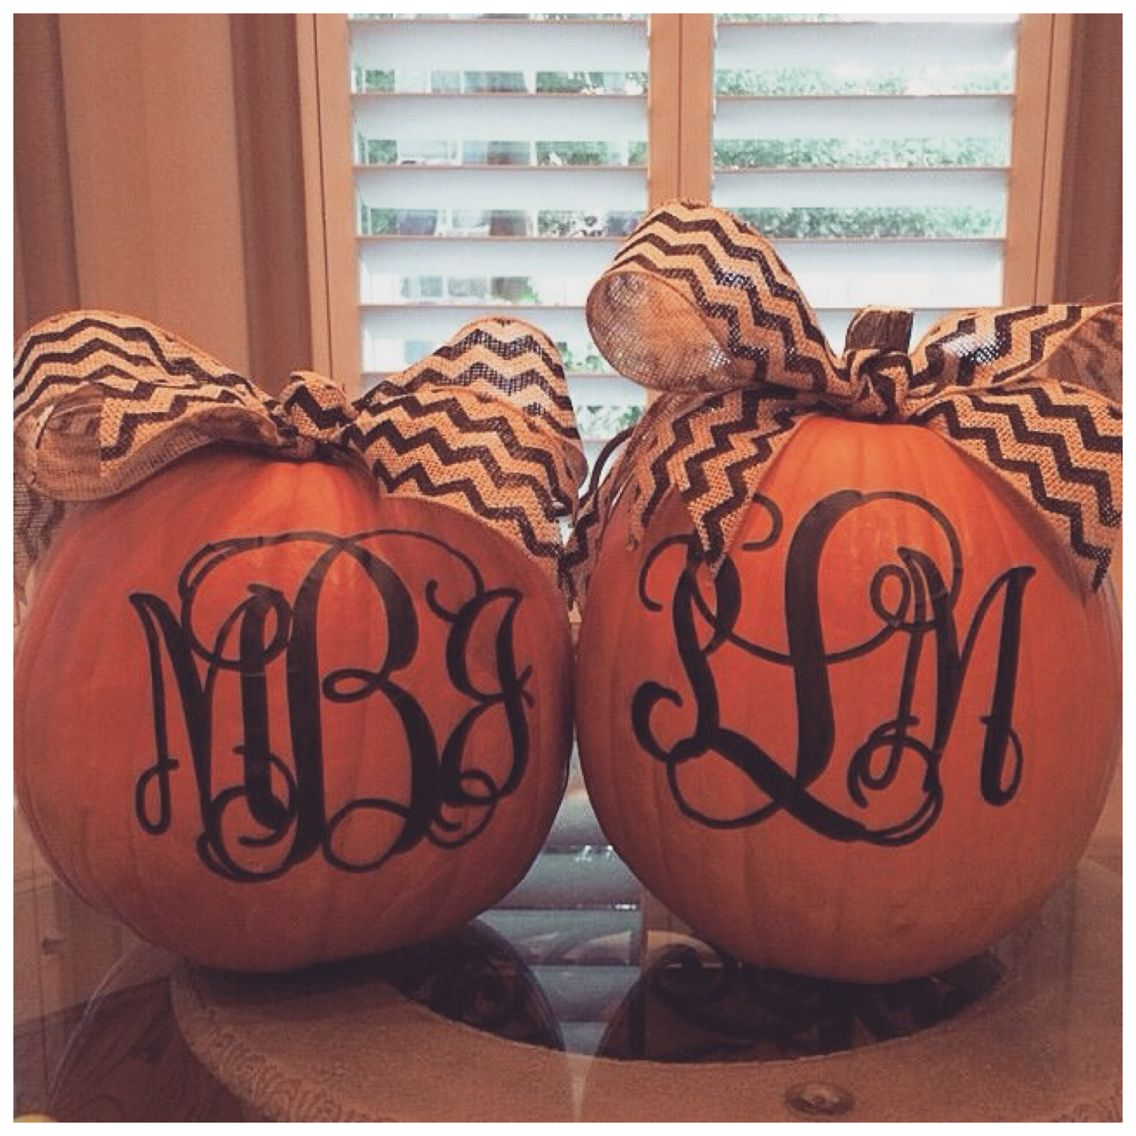 can get these at Hobby Lobby also monogram LOVE Pinterest - Hobby Lobby Halloween Decorations